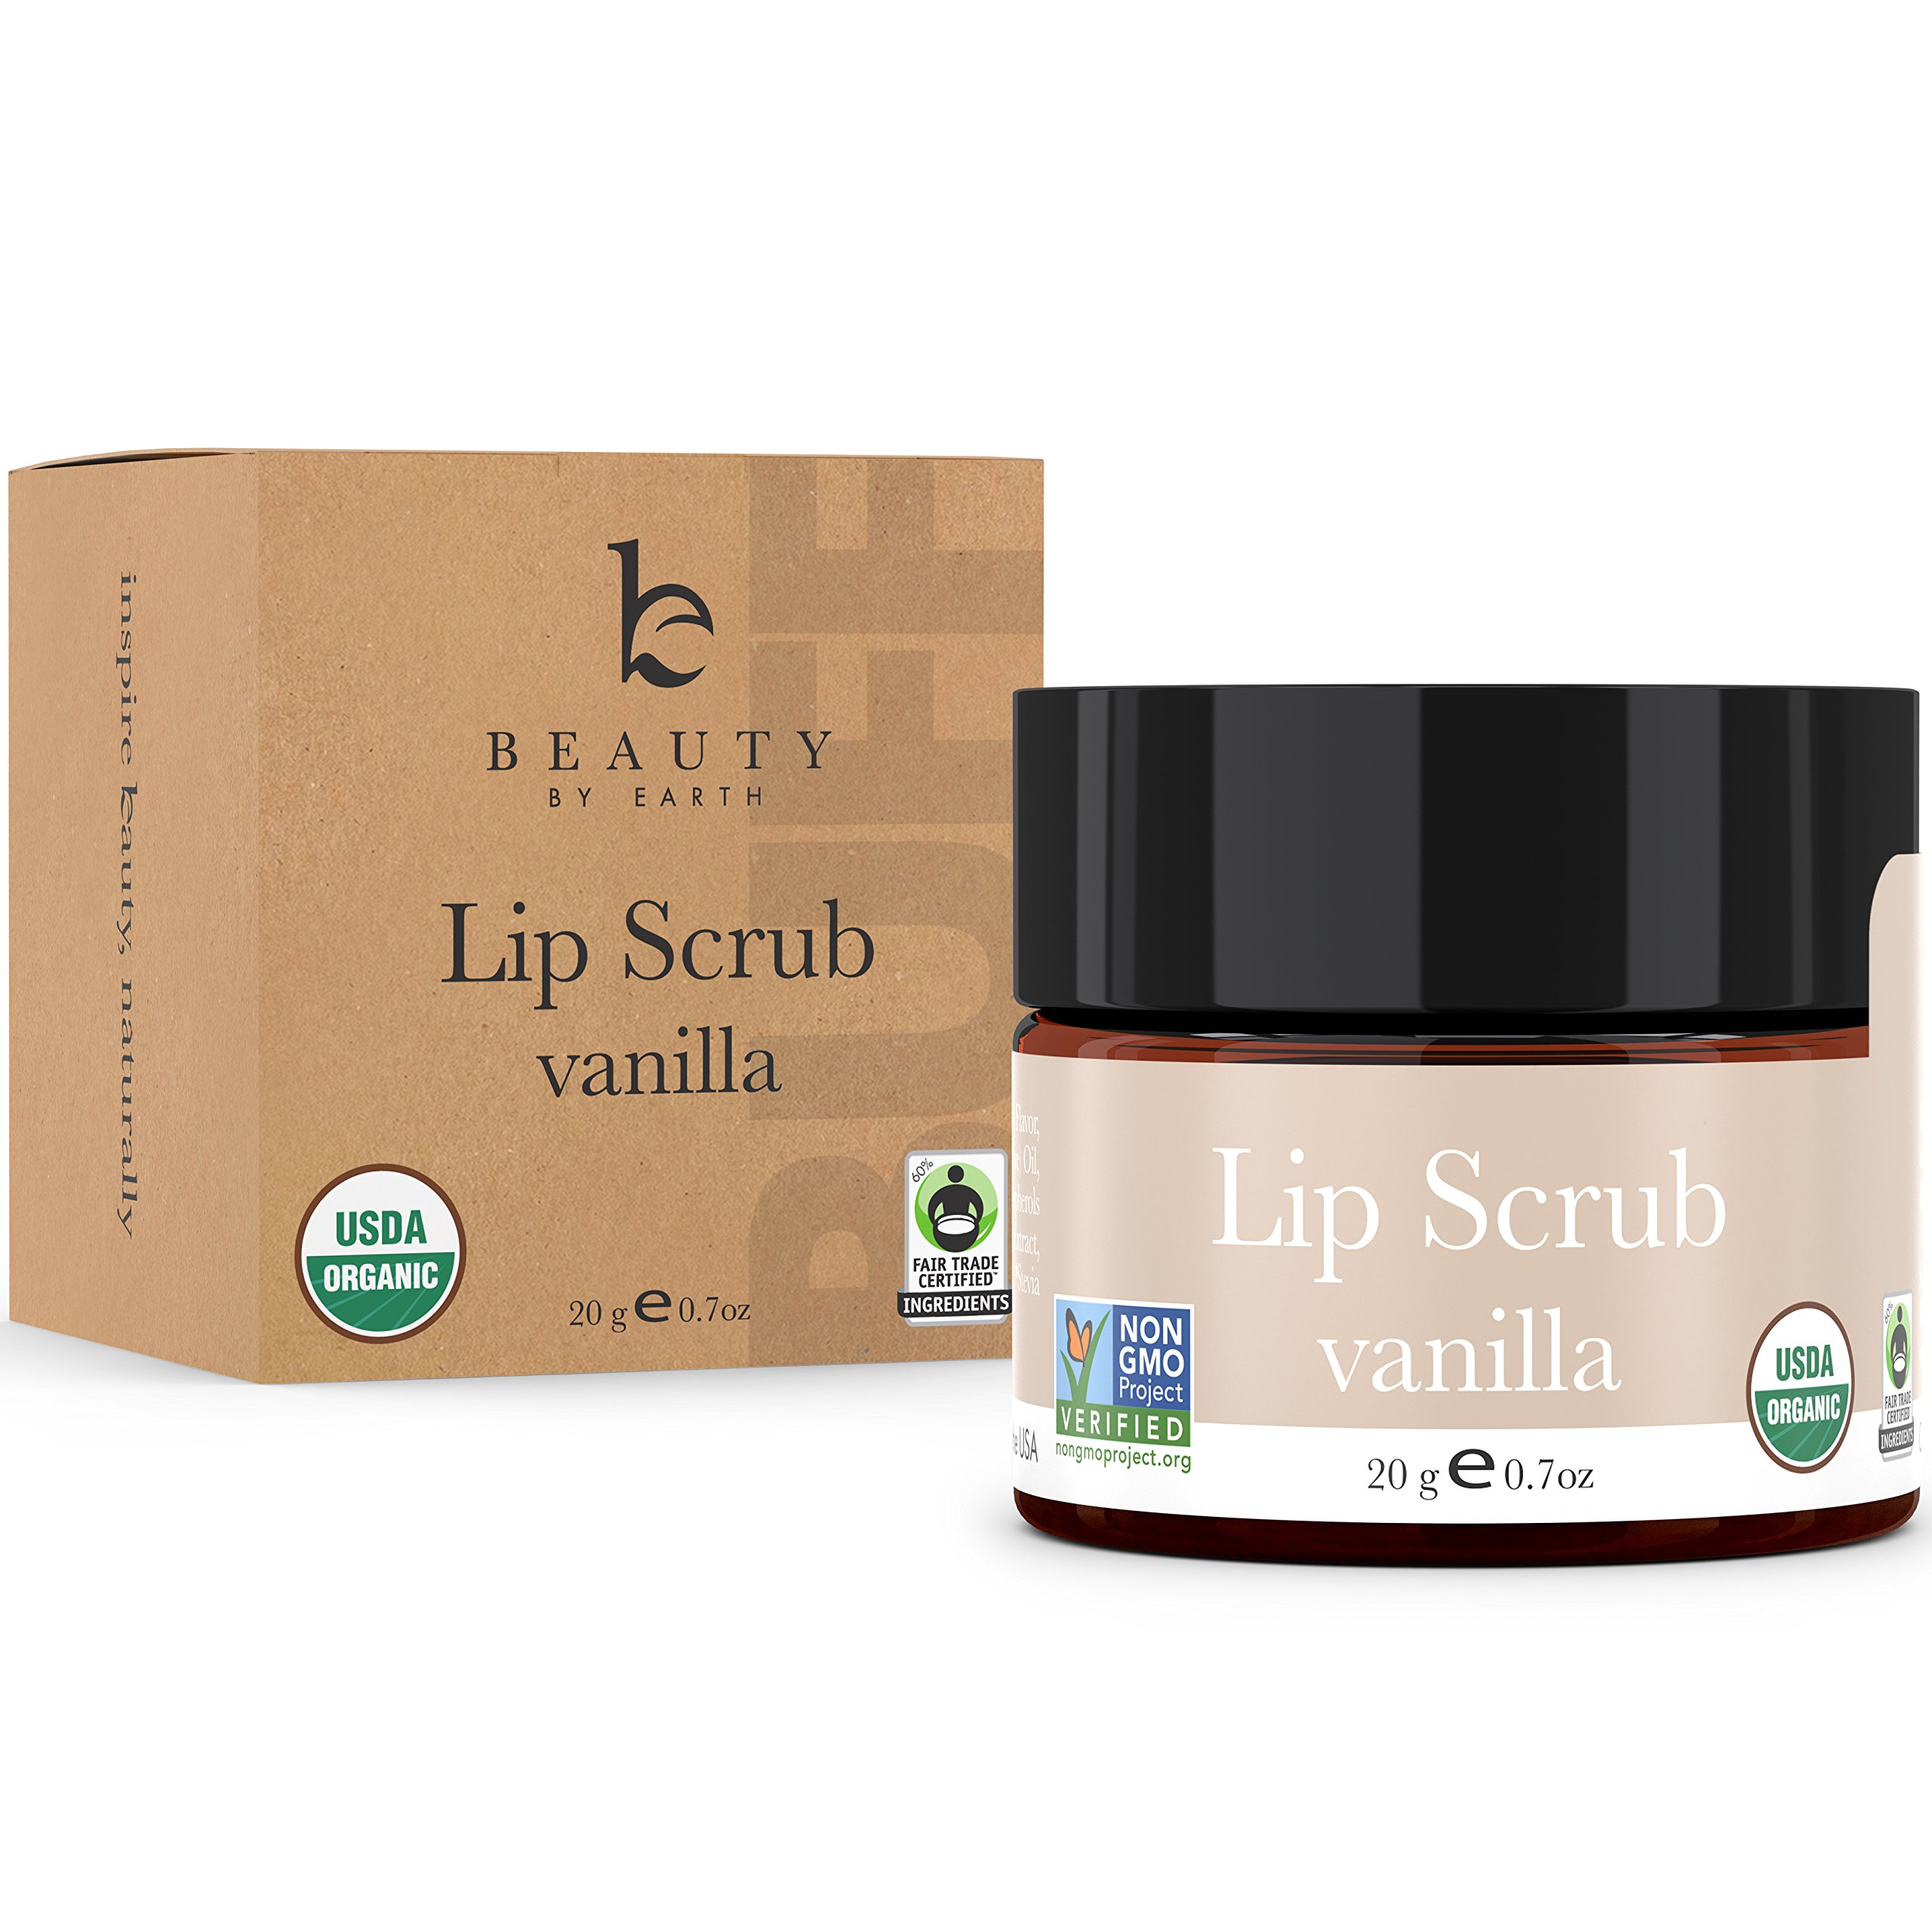 Lip Scrub, Vanilla Flavor - Organic Exfoliating Sugar Scrub, Exfoliator for Chapped Dry Lips, Moisturizes With Fresh Lush Natural Ingredients, Best Before Balm for Men and Women (1 pack)